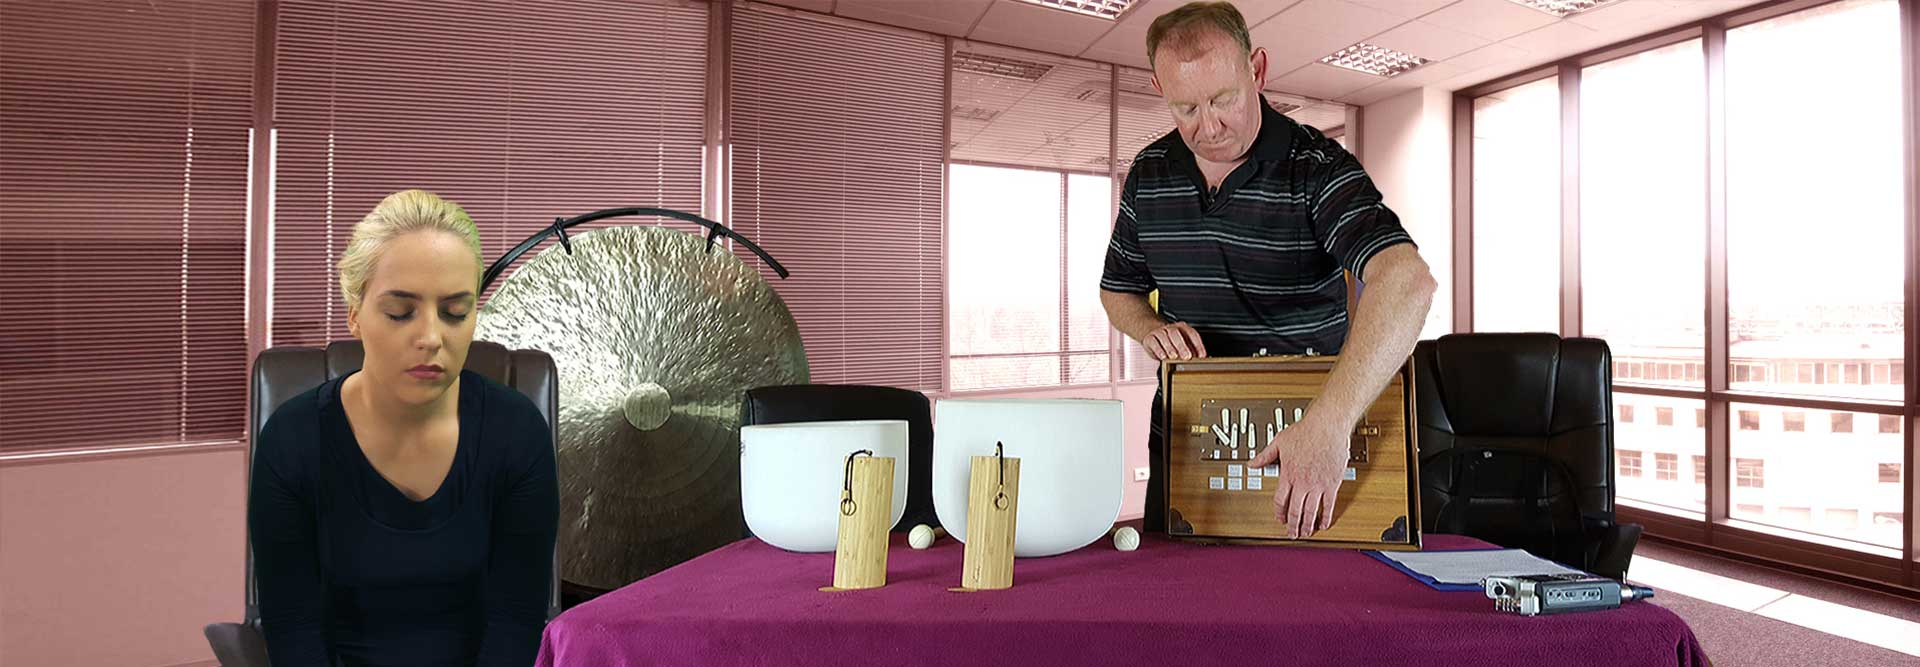 Positive Feedback from clients is proof that Sound healing works